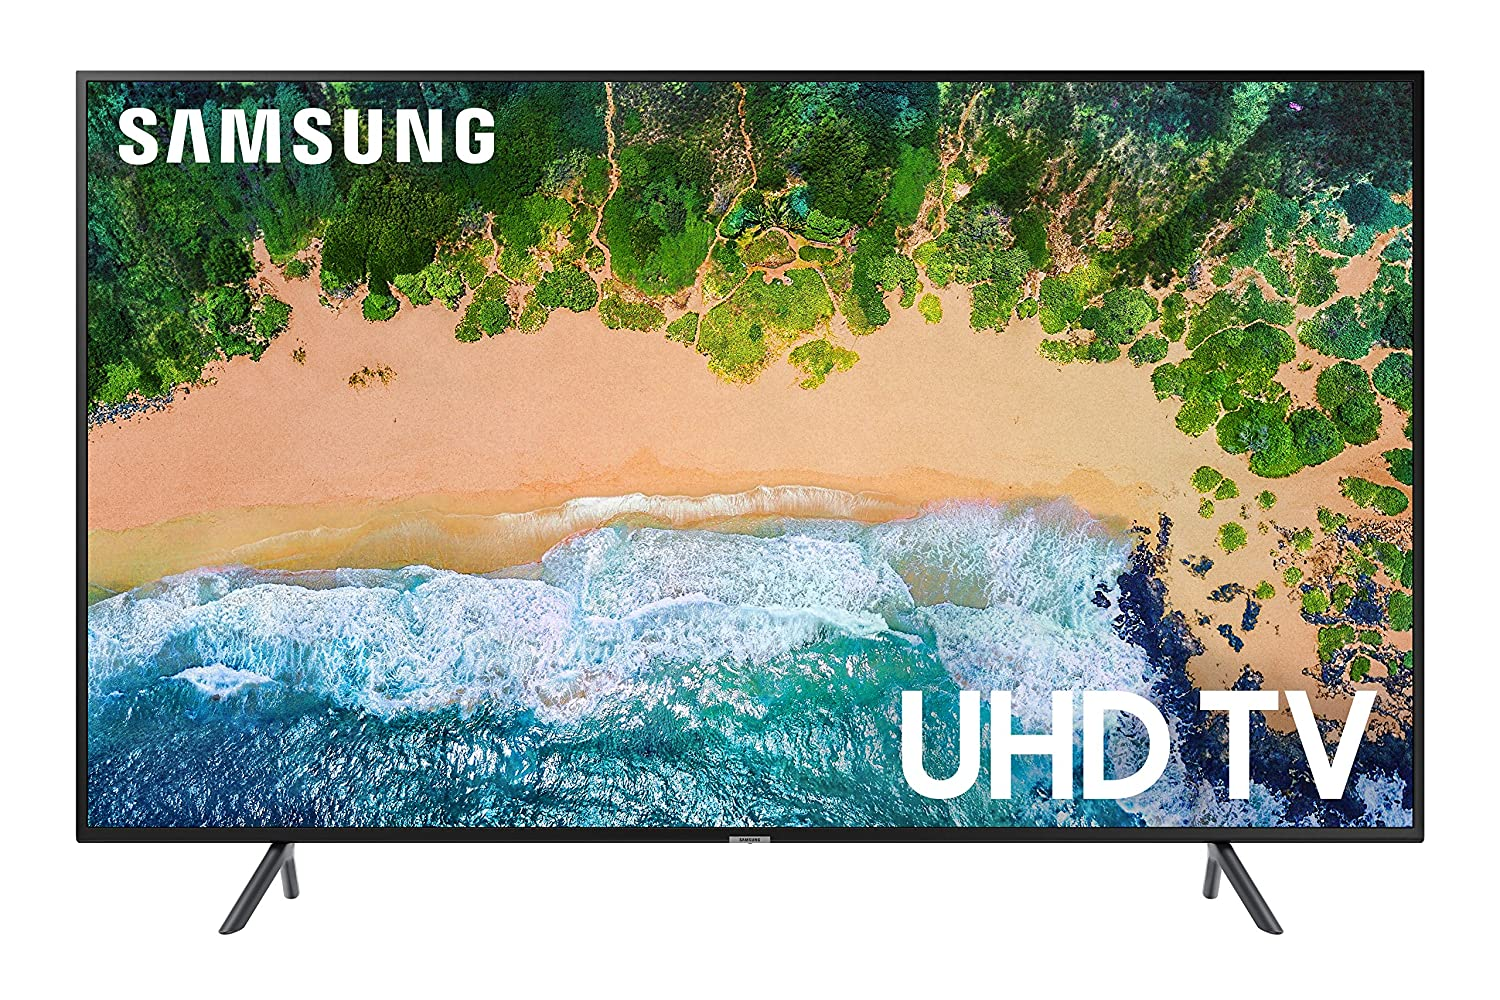 Samsung UN75NU7100 75-inch 4K Black Friday deal 2019